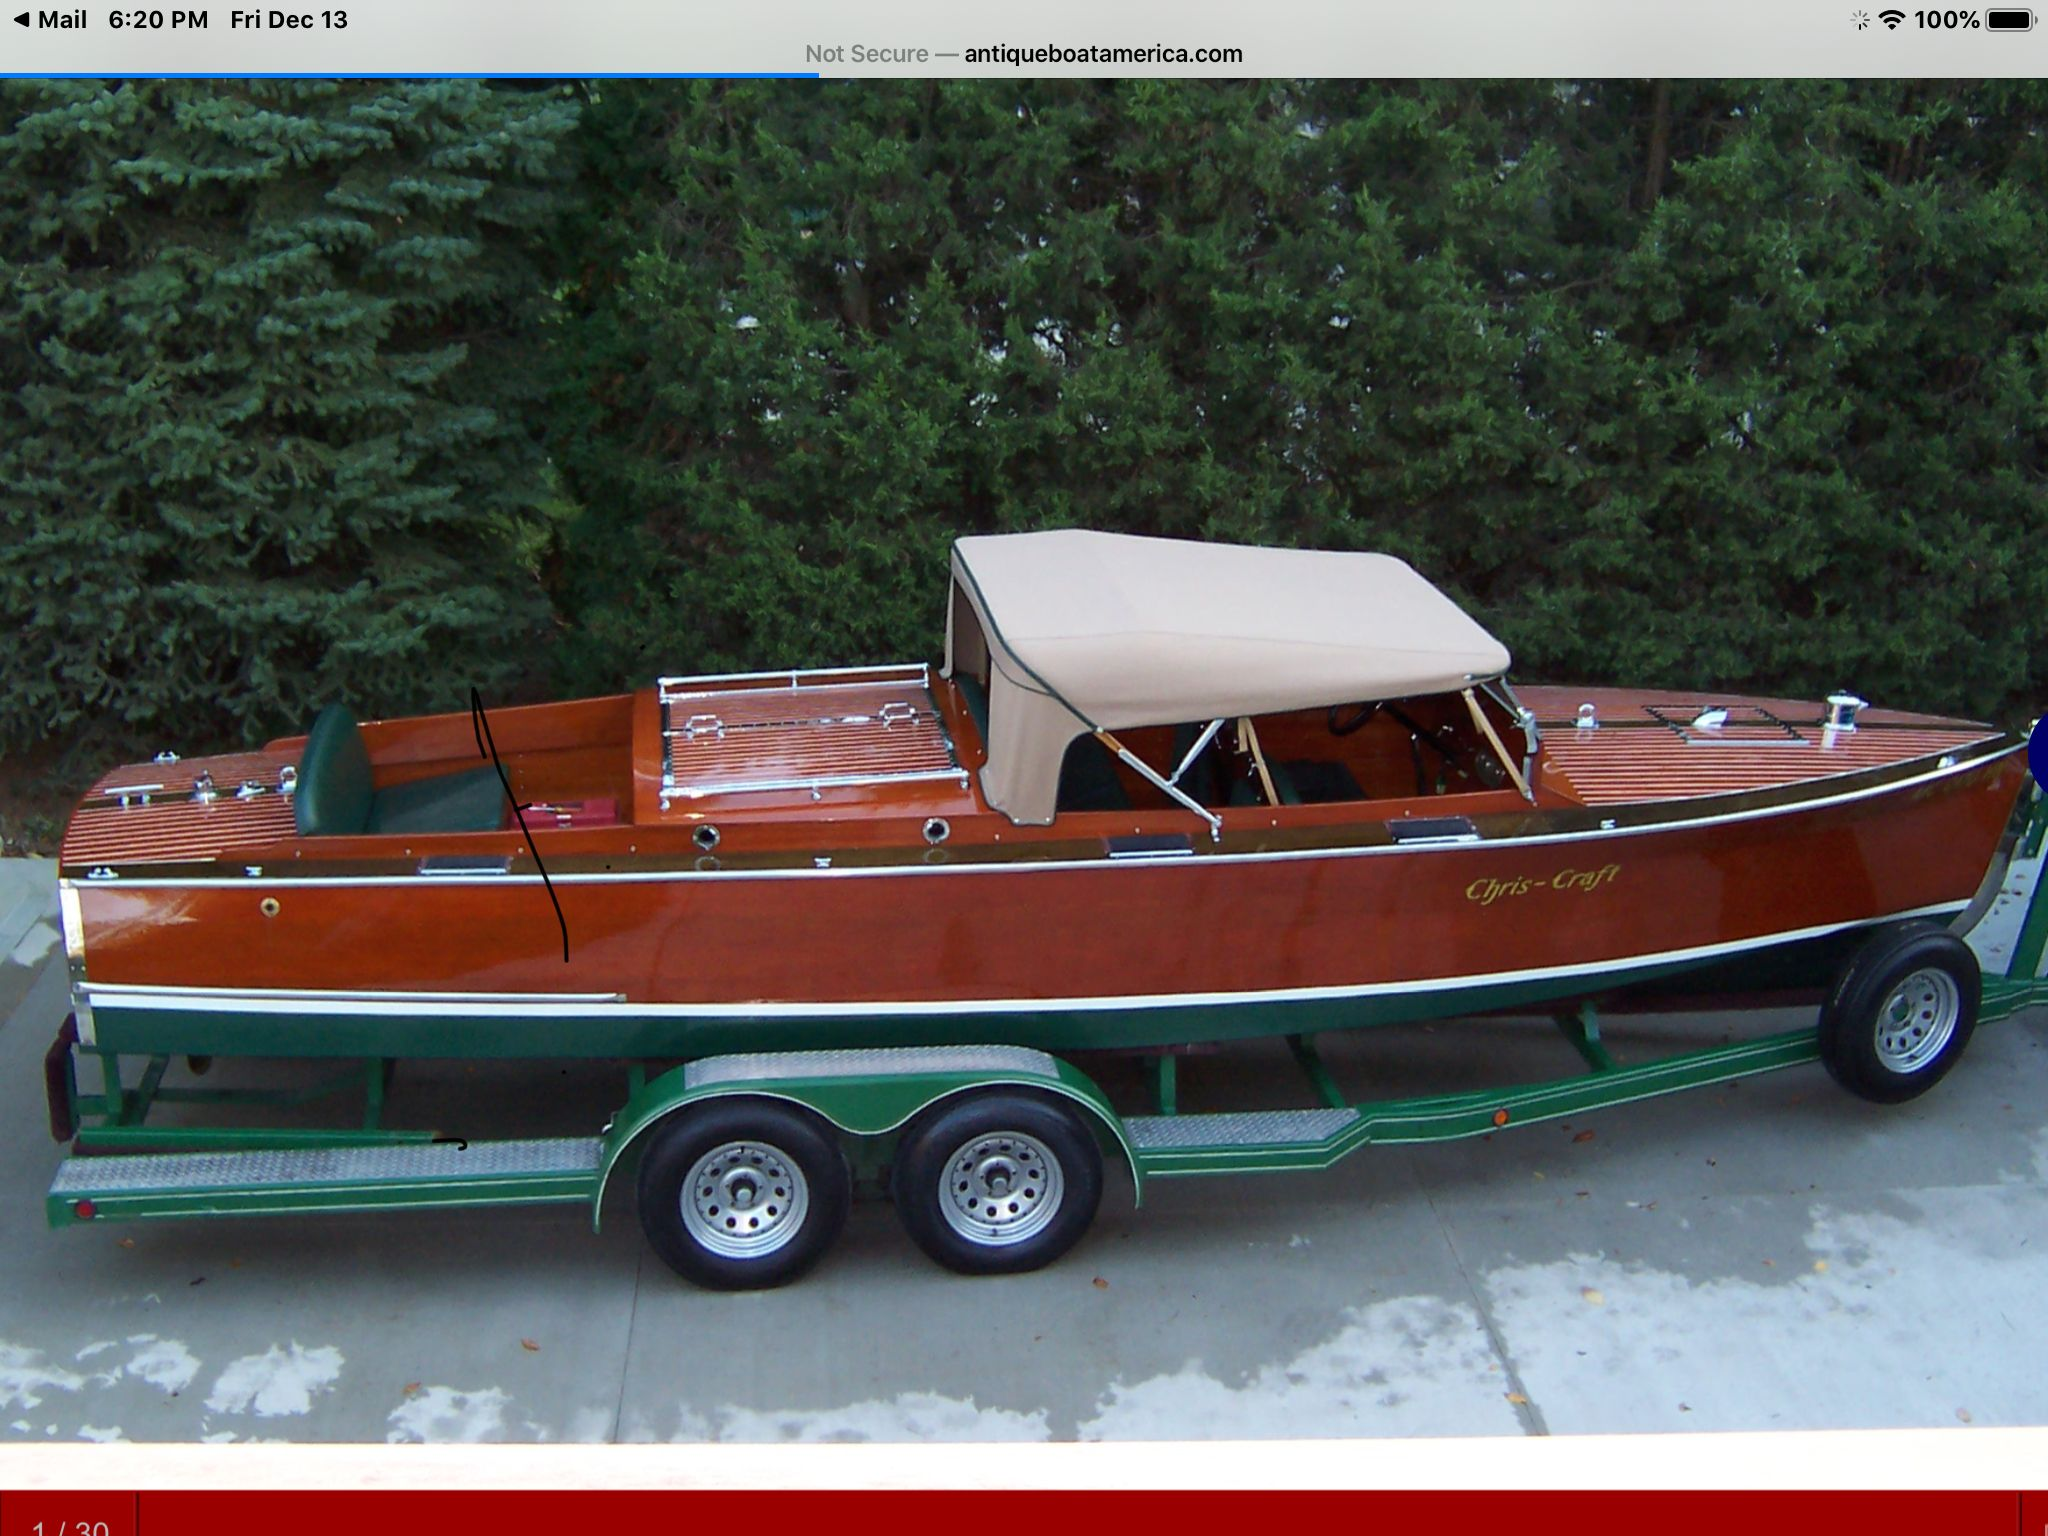 Pin By Boatman On Classic Boats In 2020 Classic Boats Wooden Boats Boat